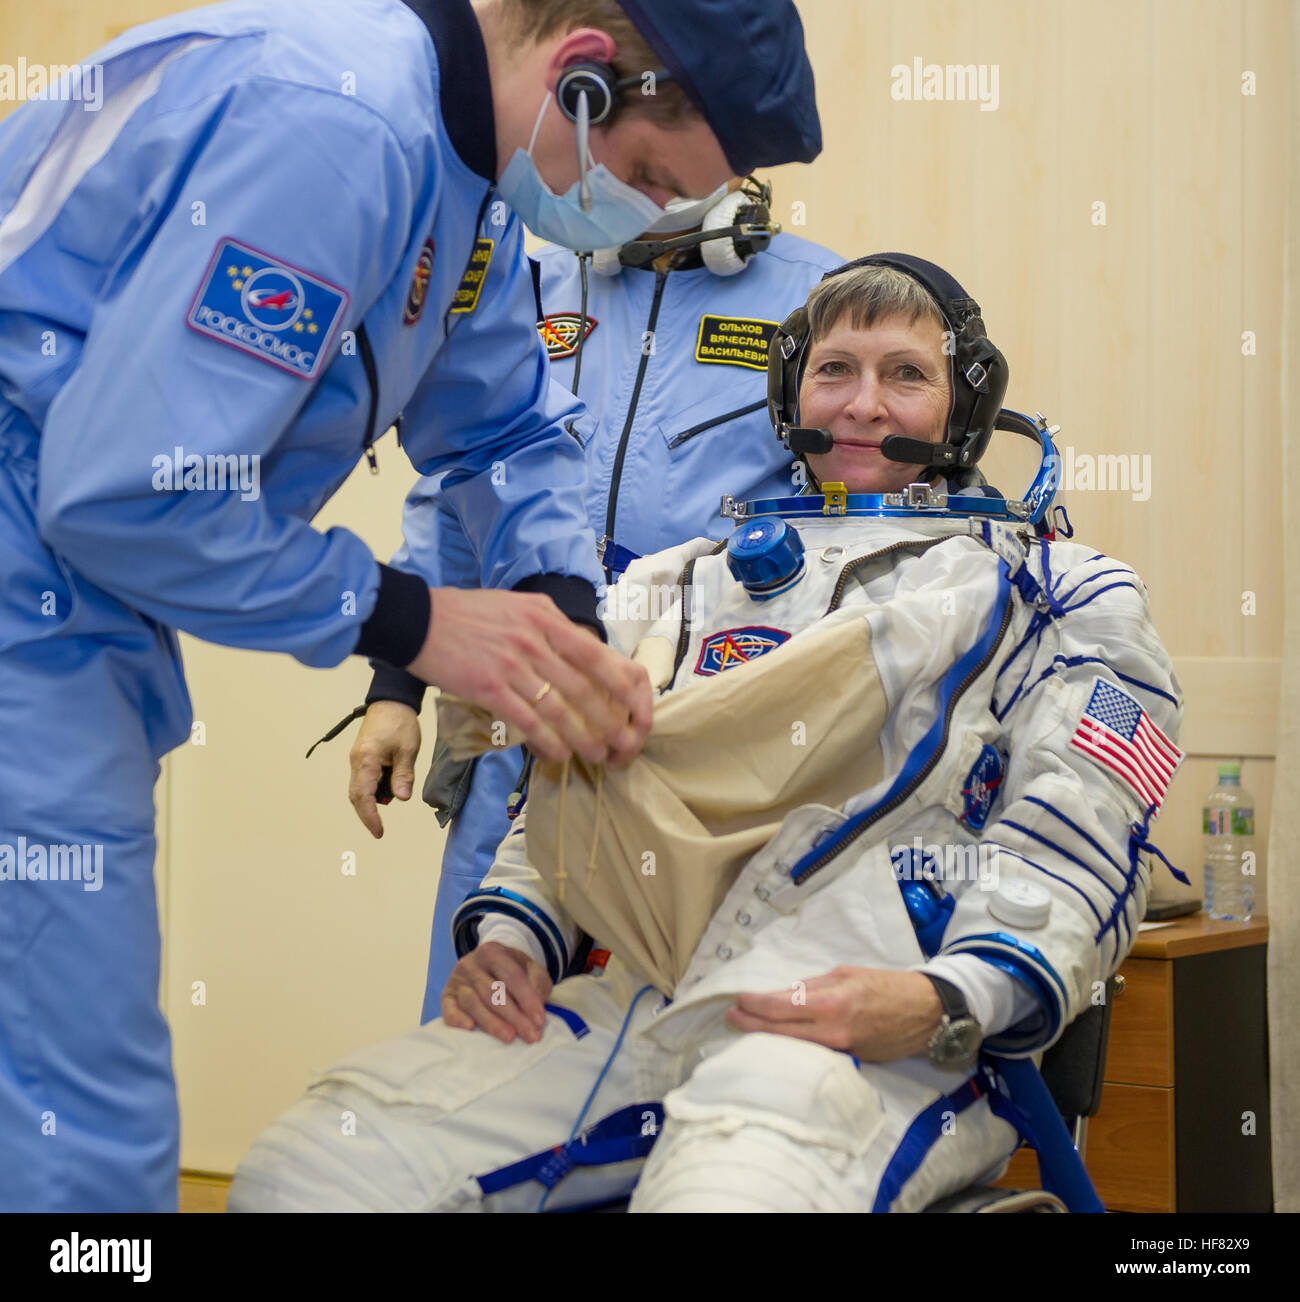 Expedition 50 NASA astronaut Peggy Whitson is seen donning her Russian sokol suit a few hours ahead of her launch - Stock Image